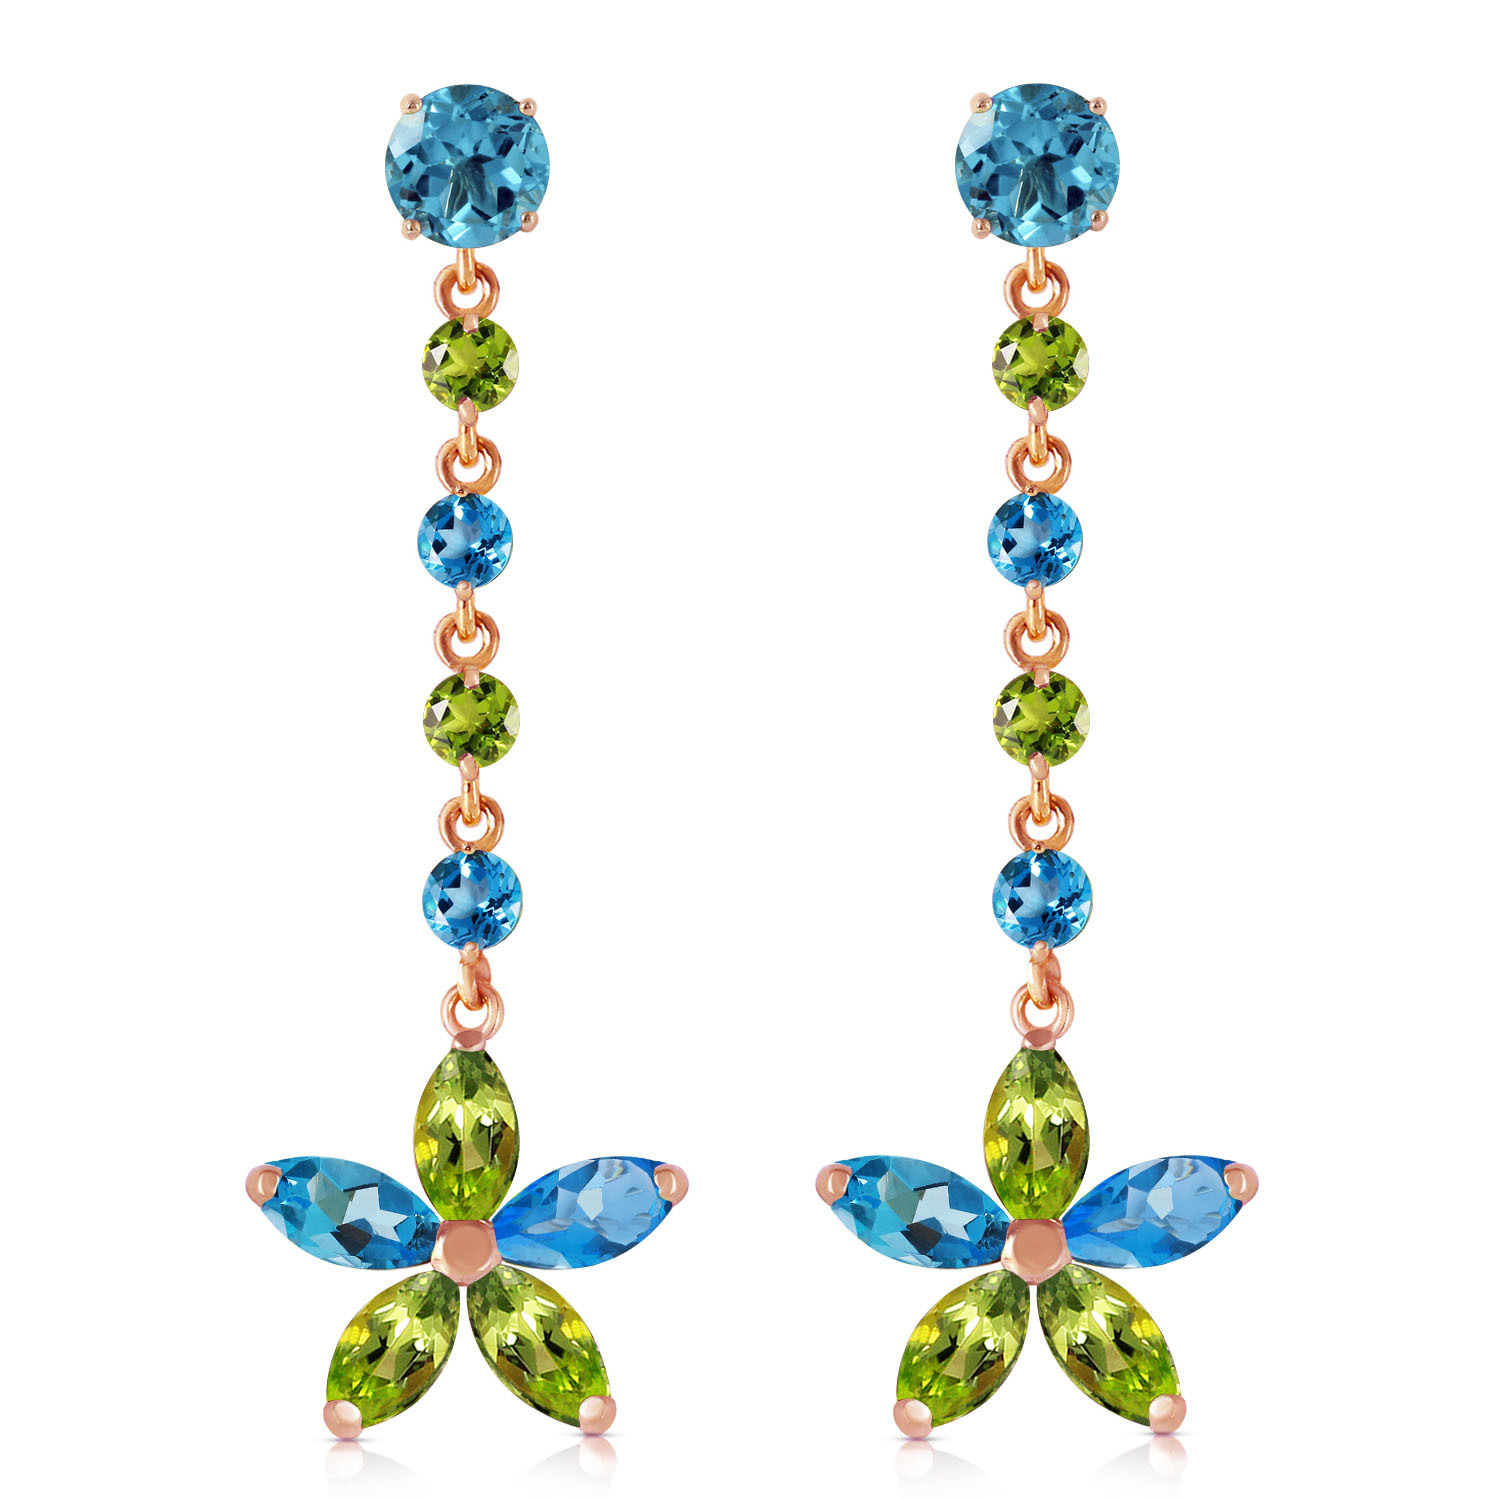 Primary image for 14K Solid Rose Gold Women's Chandelier Earrings w/ Natural Blue Topaz & Peridots